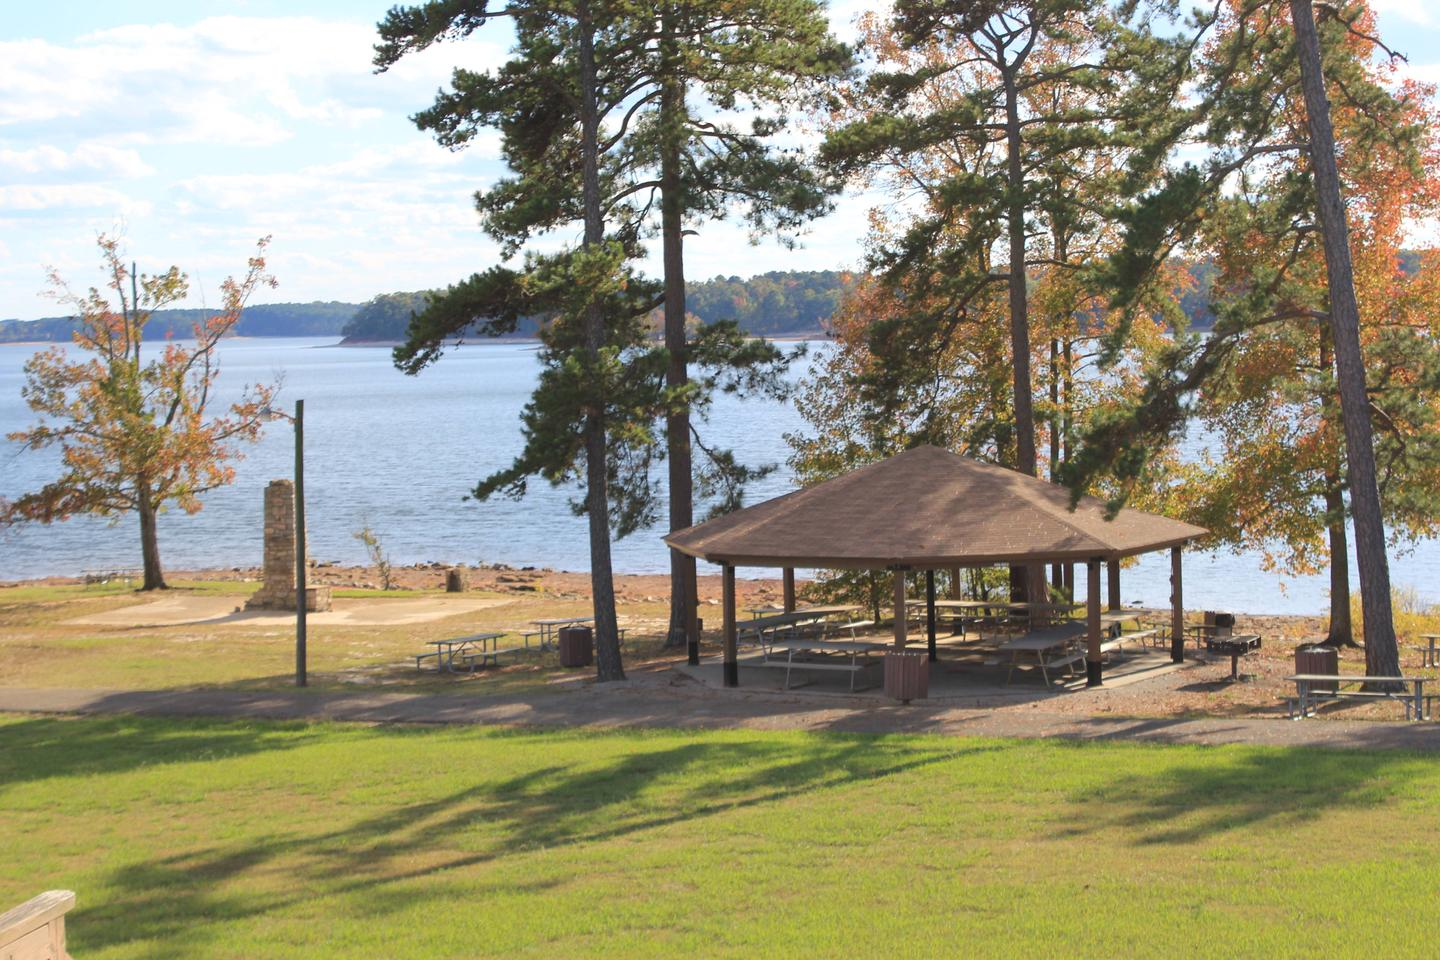 OPAWelcome to North Bend Park! This is the Old Picnic Area. We call this the OPA for short. The OPA is a picnic area located before you get to North Bend Park.